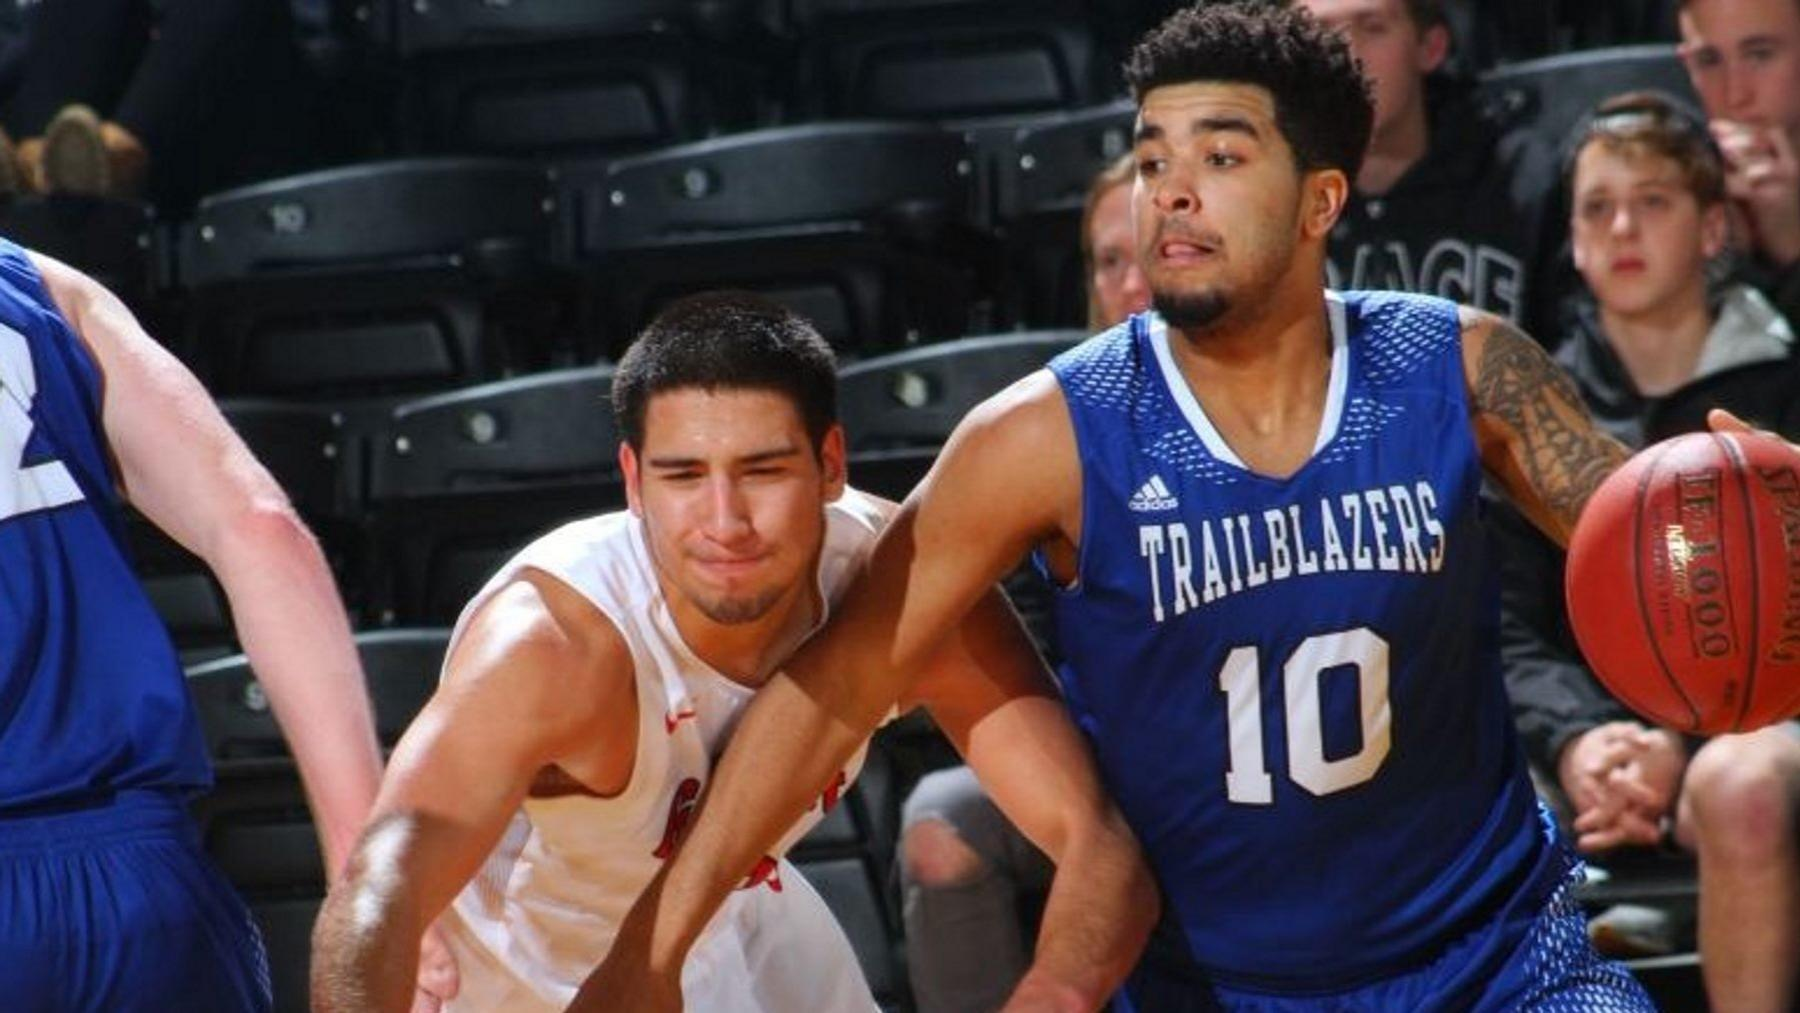 Trailblazers Upset Lancers, Punch Ticket to NCCAA National Tournament